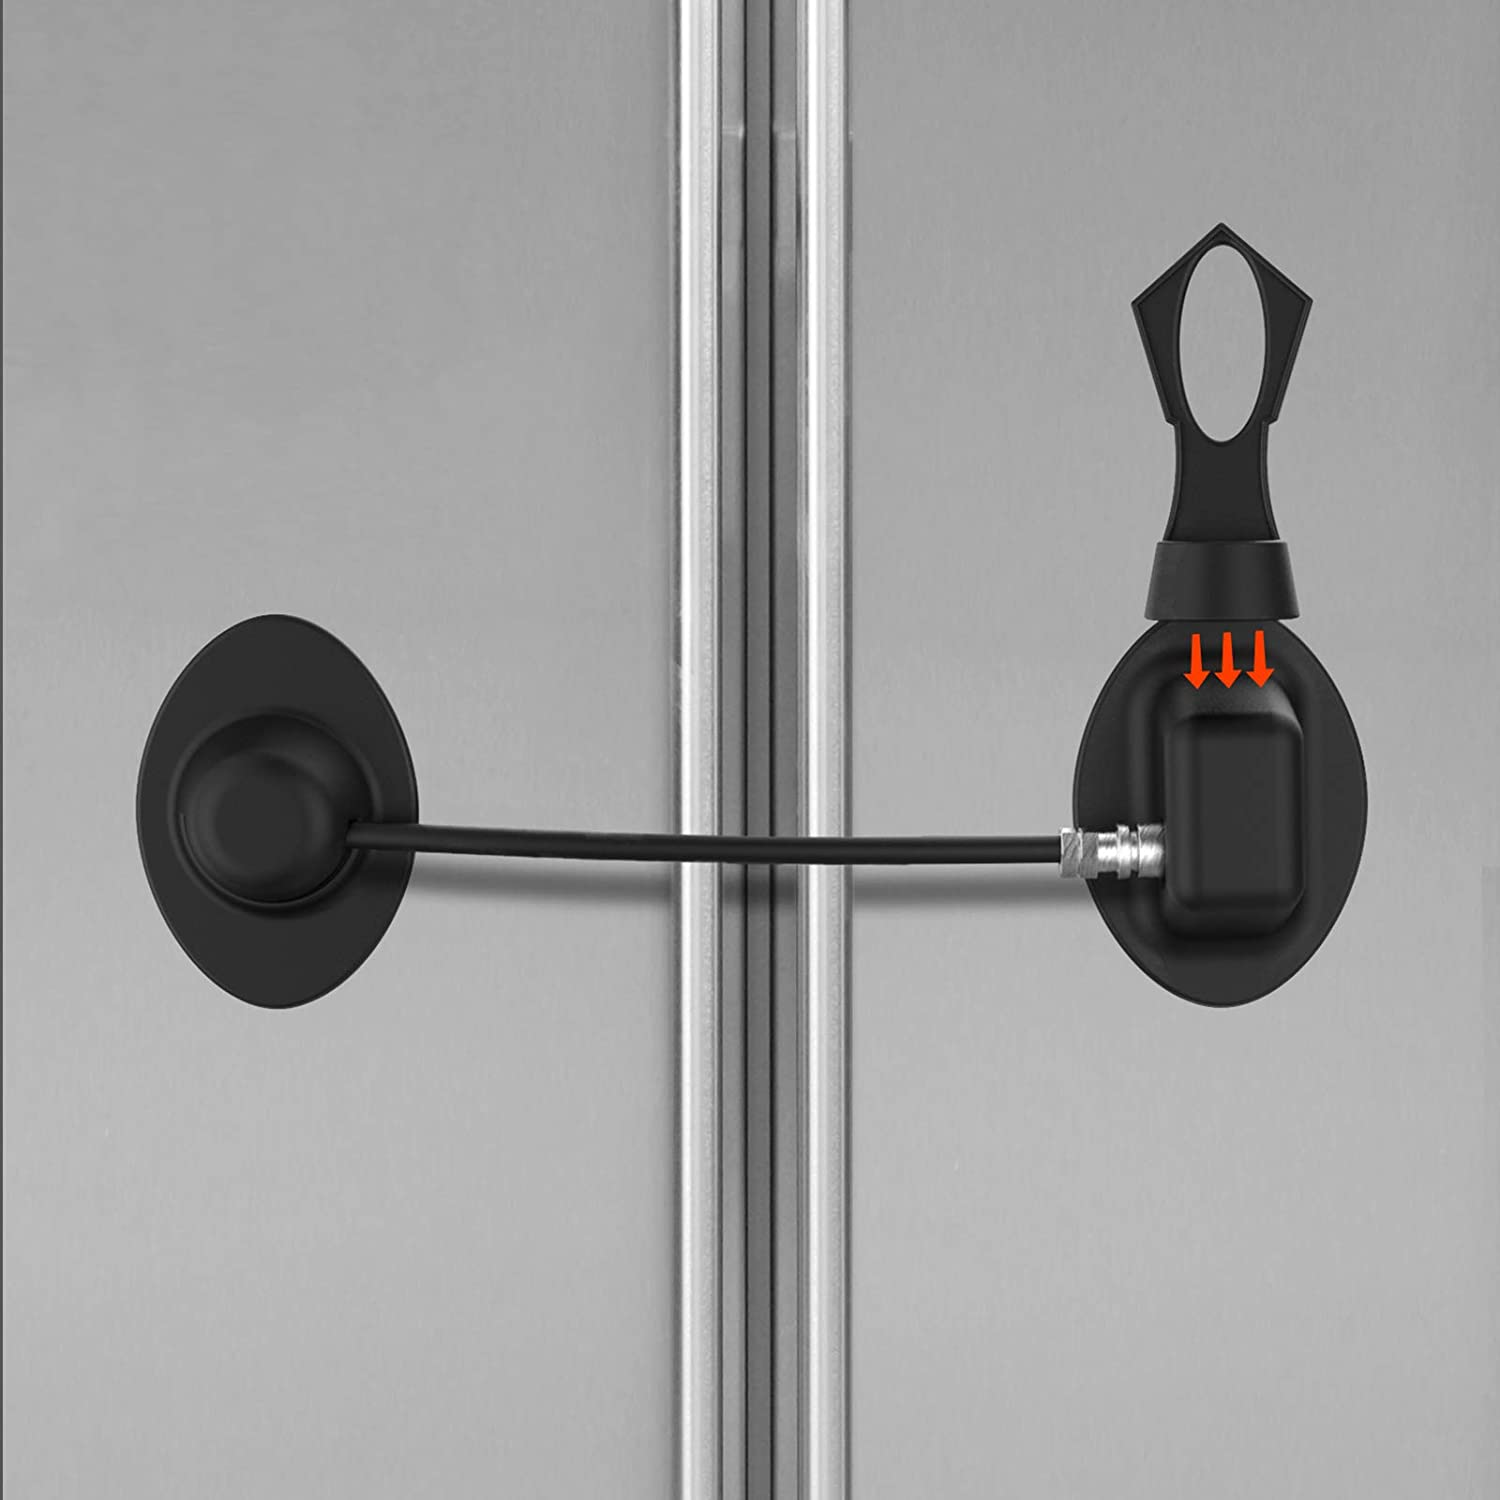 Refrigerator Lock, Childproof Fridge Lock with Magnetic- Strong 3M Adhesives and Cable, Super Convenience (Black)